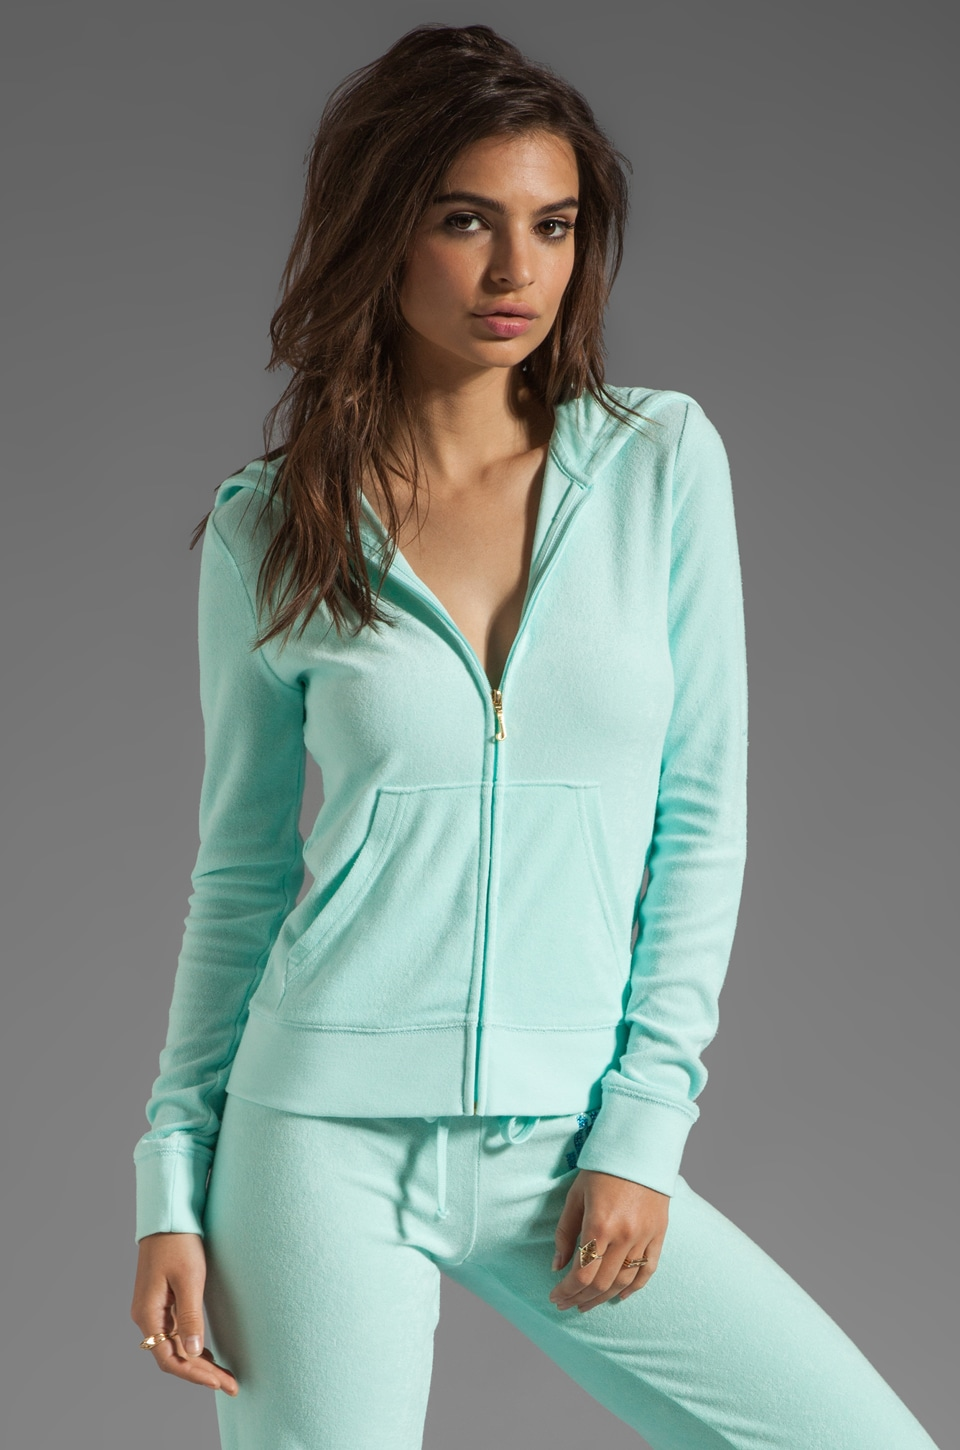 Juicy Couture Terry Original Hoodie in Monroe